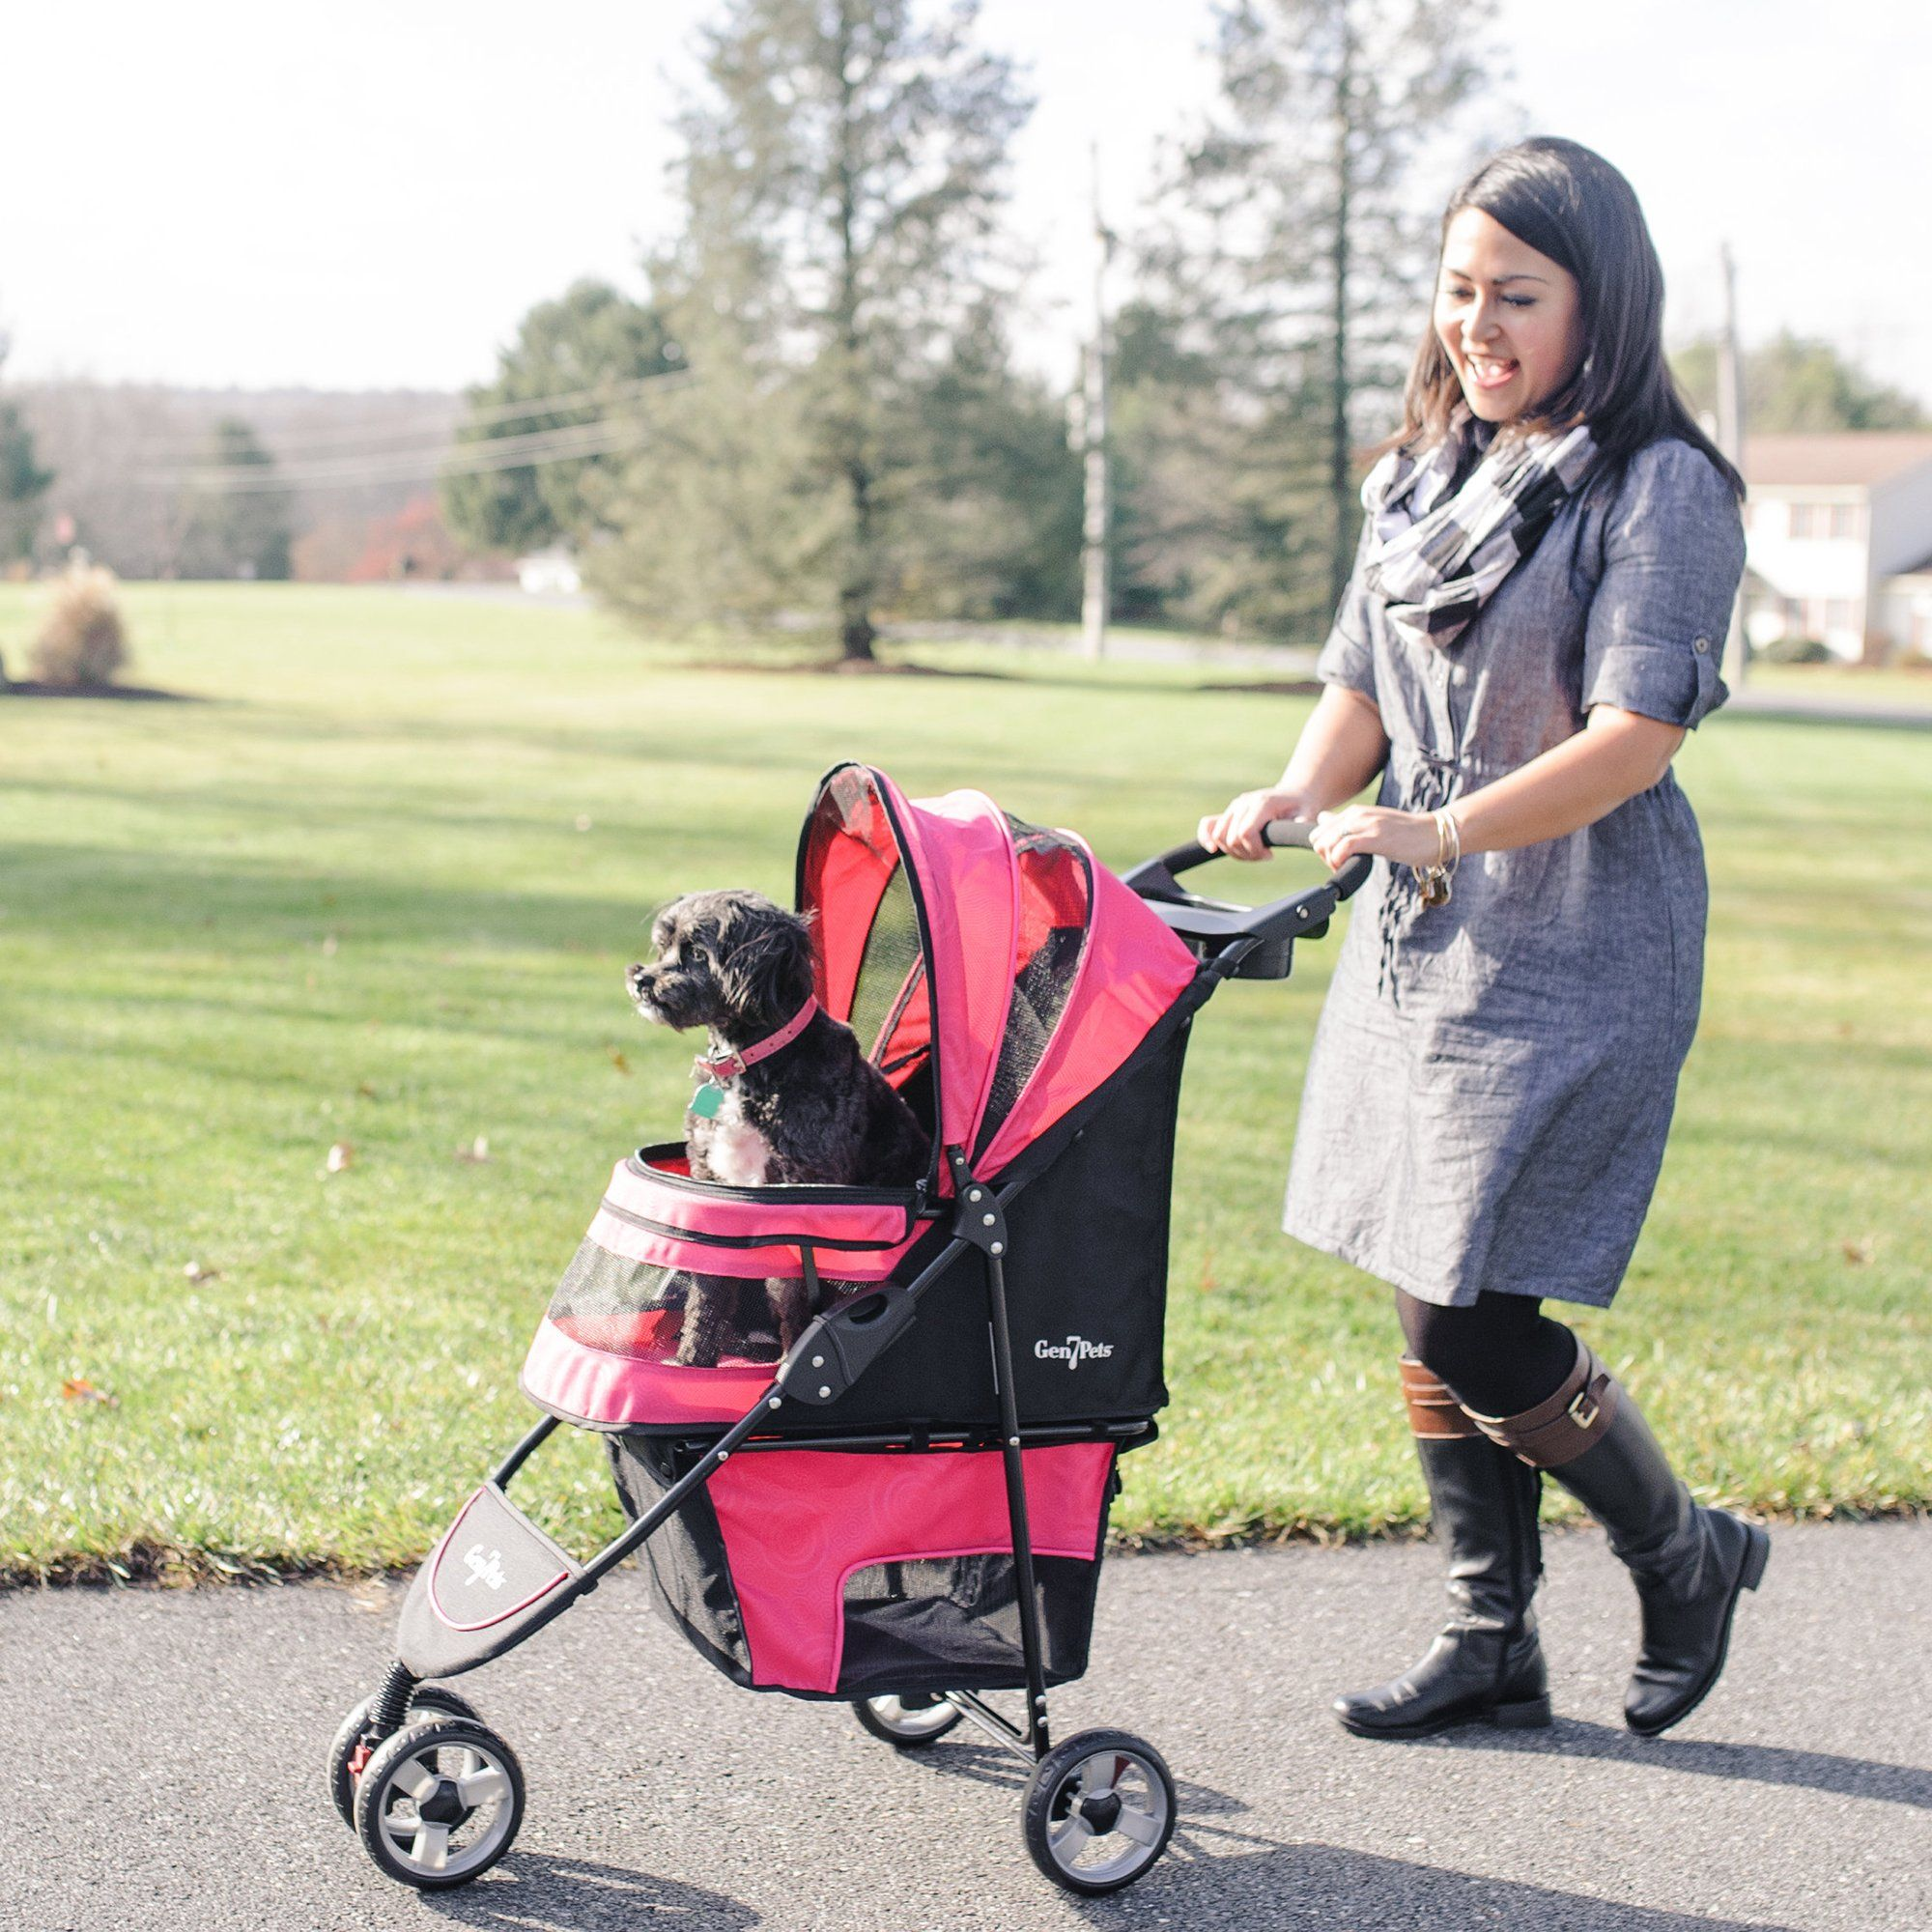 Gen7 Regal Plus Pet Stroller for Dogs and Cats â